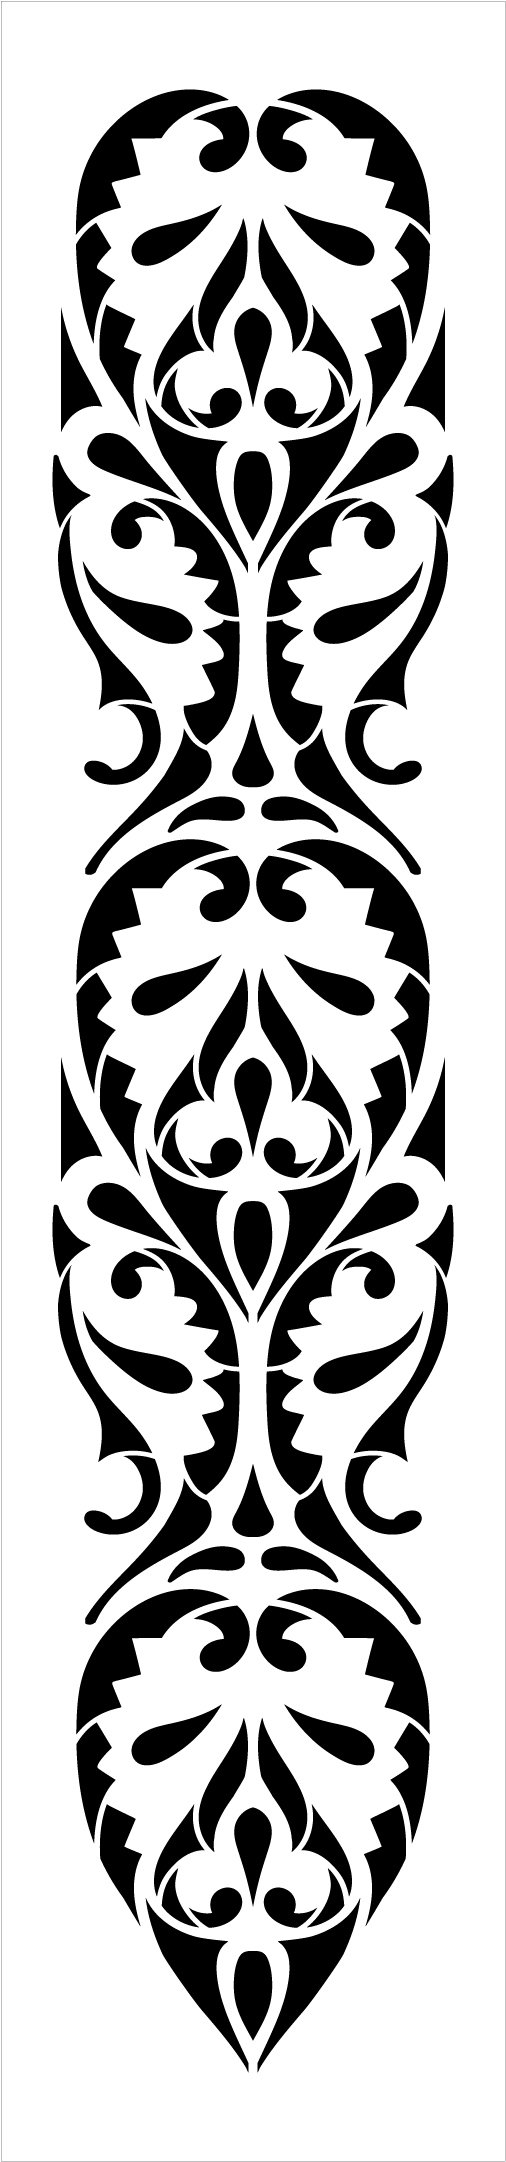 Egyptian Ornamental Leaf Band Stencil by StudioR12 | Craft DIY Repeating Pattern Home Decor | Paint Wood Sign | Reusable Mylar Template | Select Size